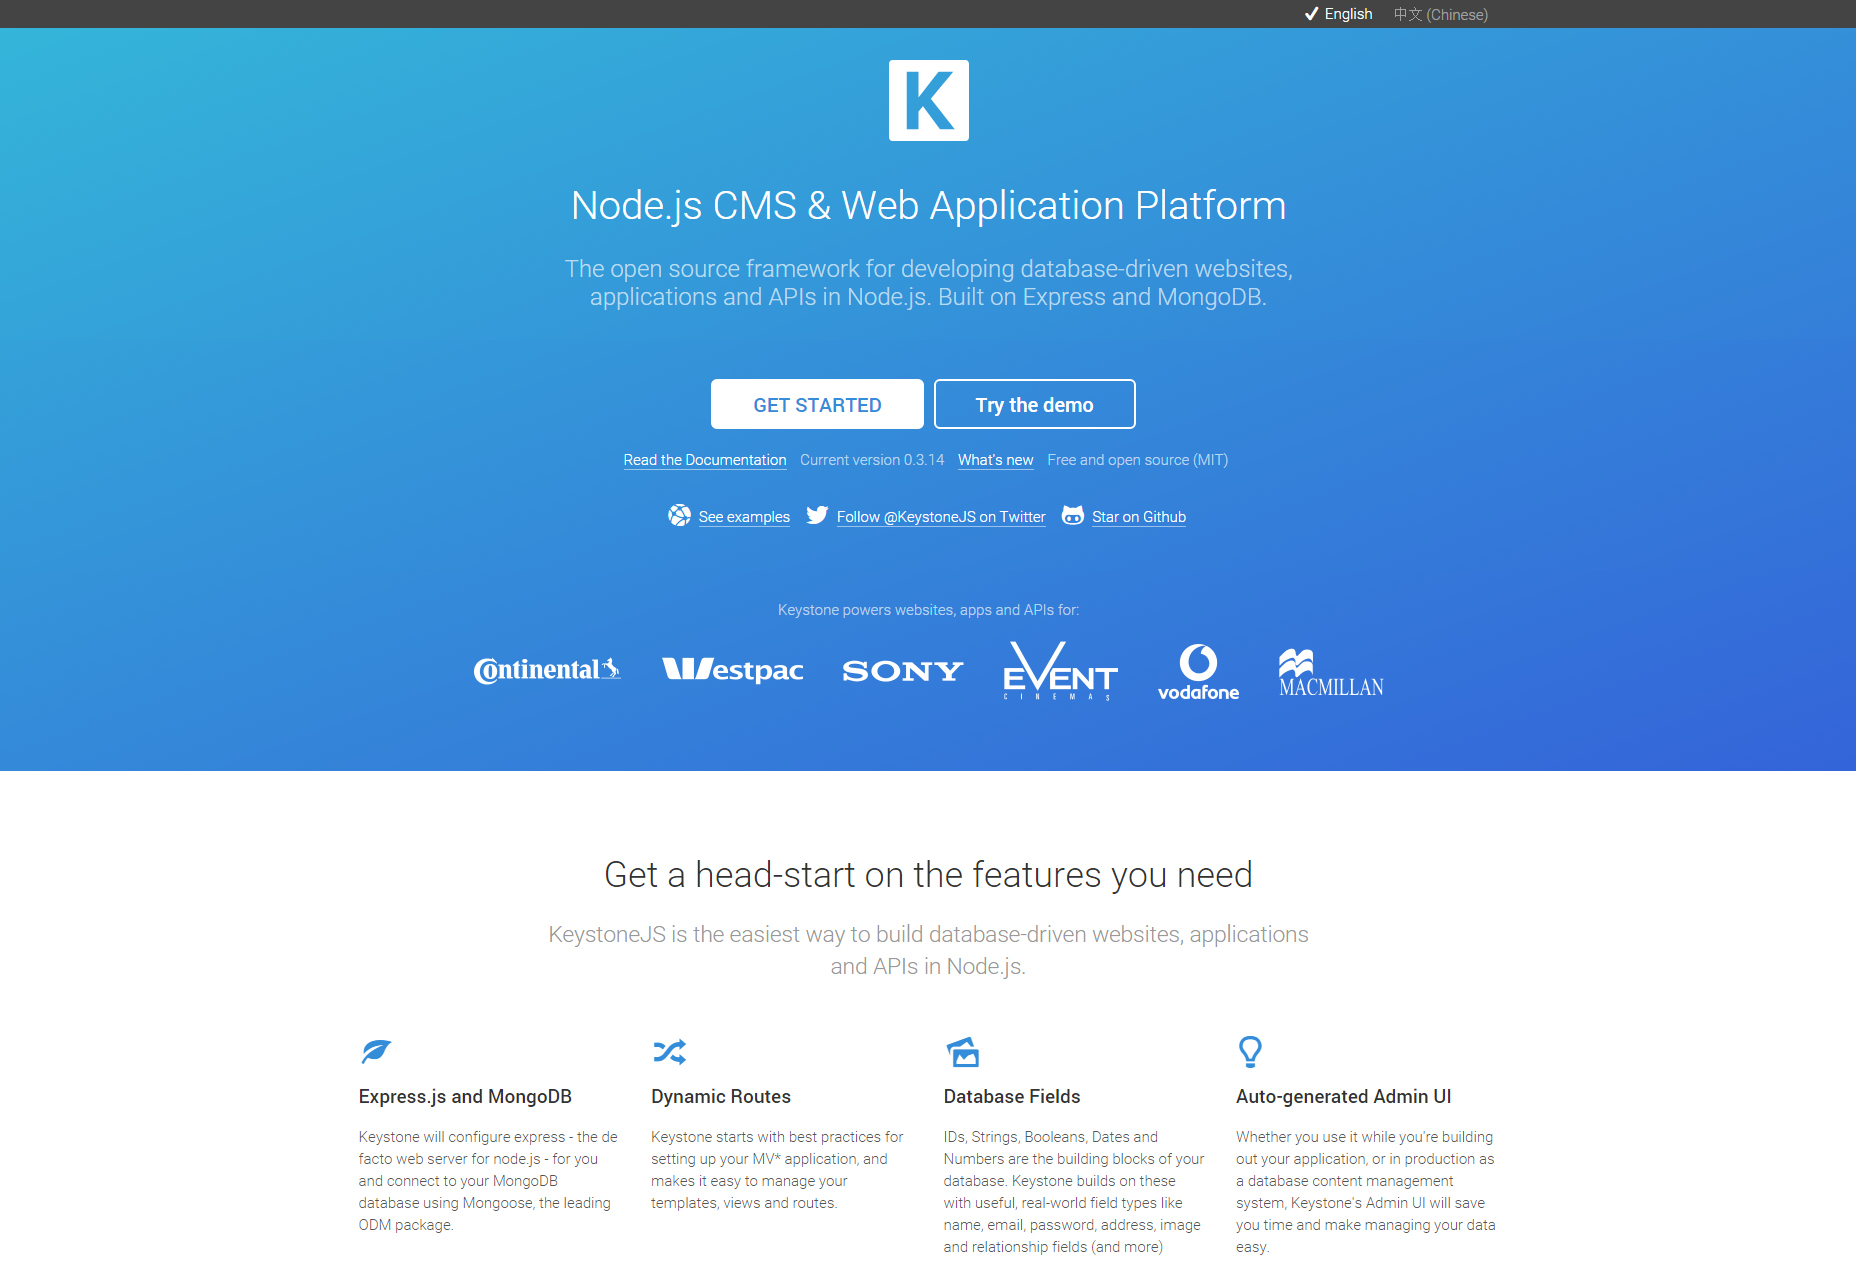 keystonejs-nodejs-cms-and-web-application-platform